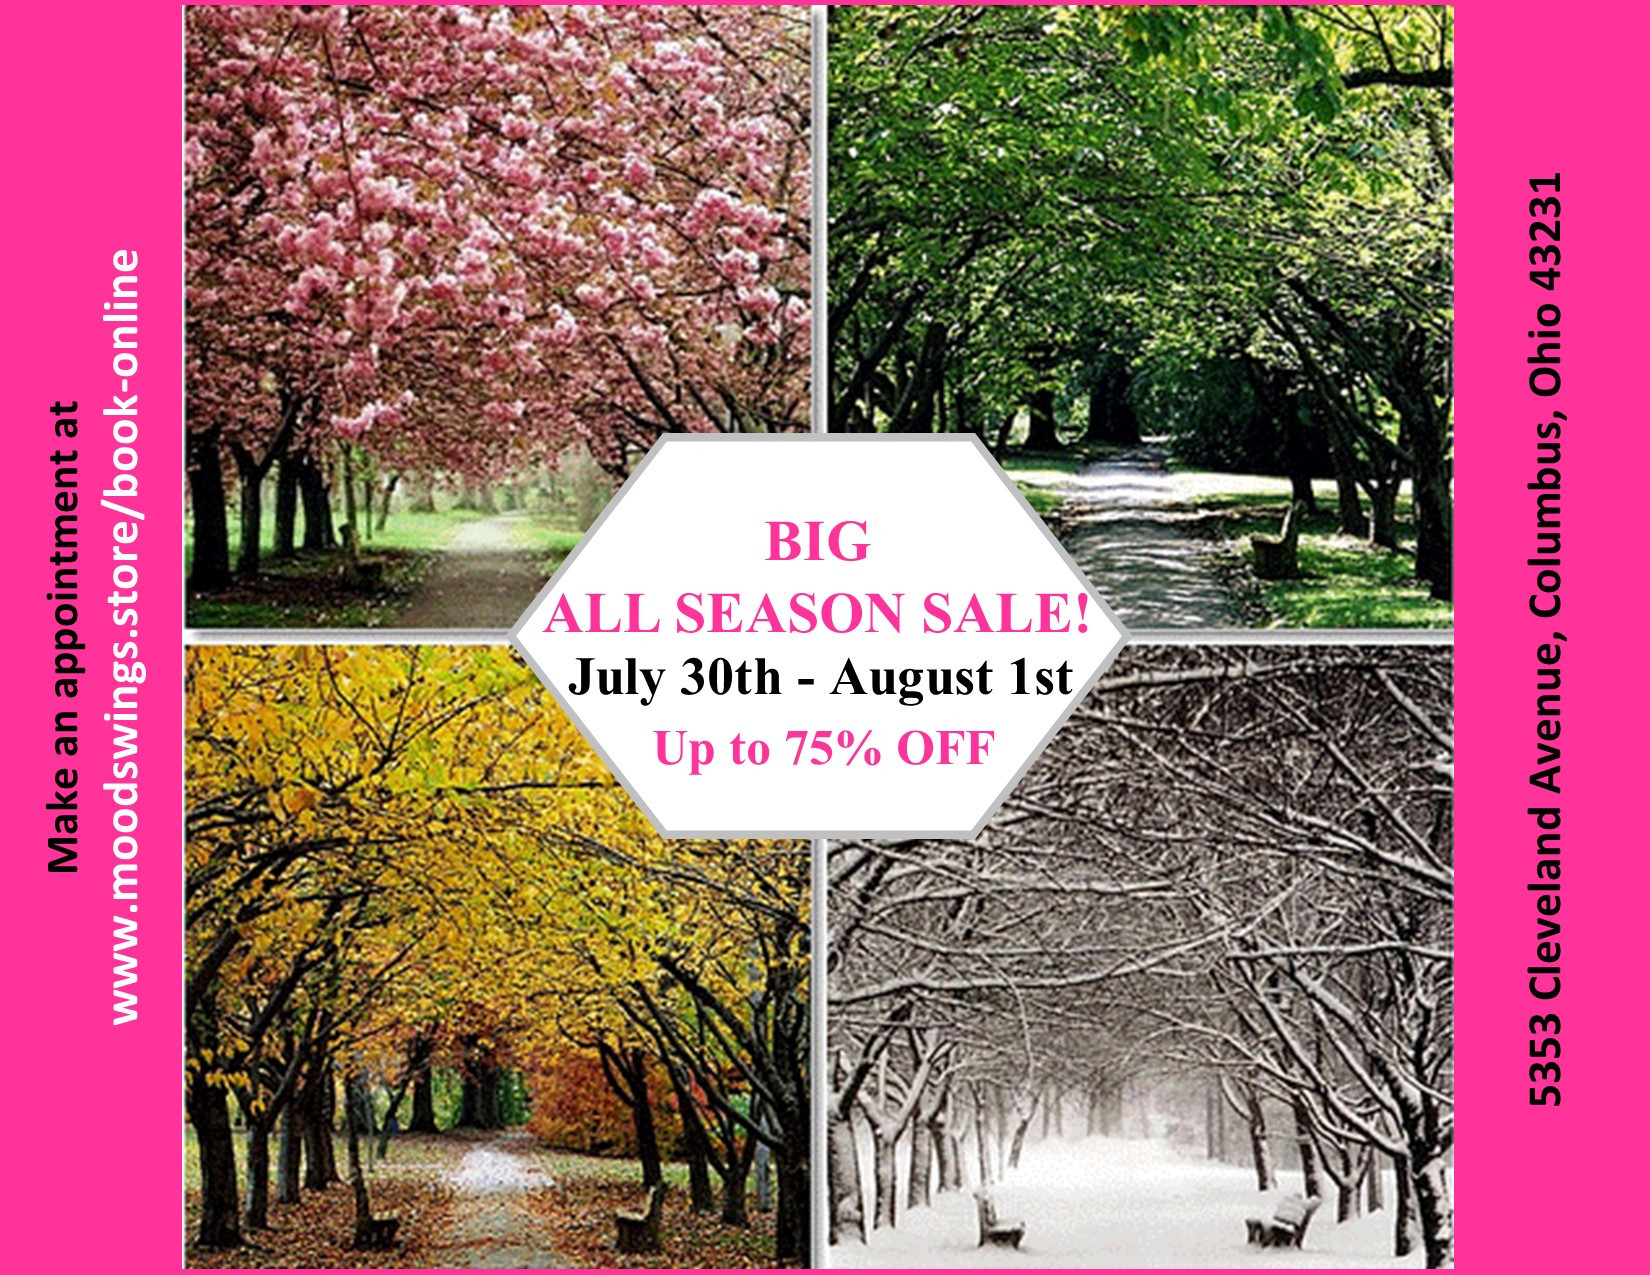 BIG ALL SEASON SALE APPOINTMENT